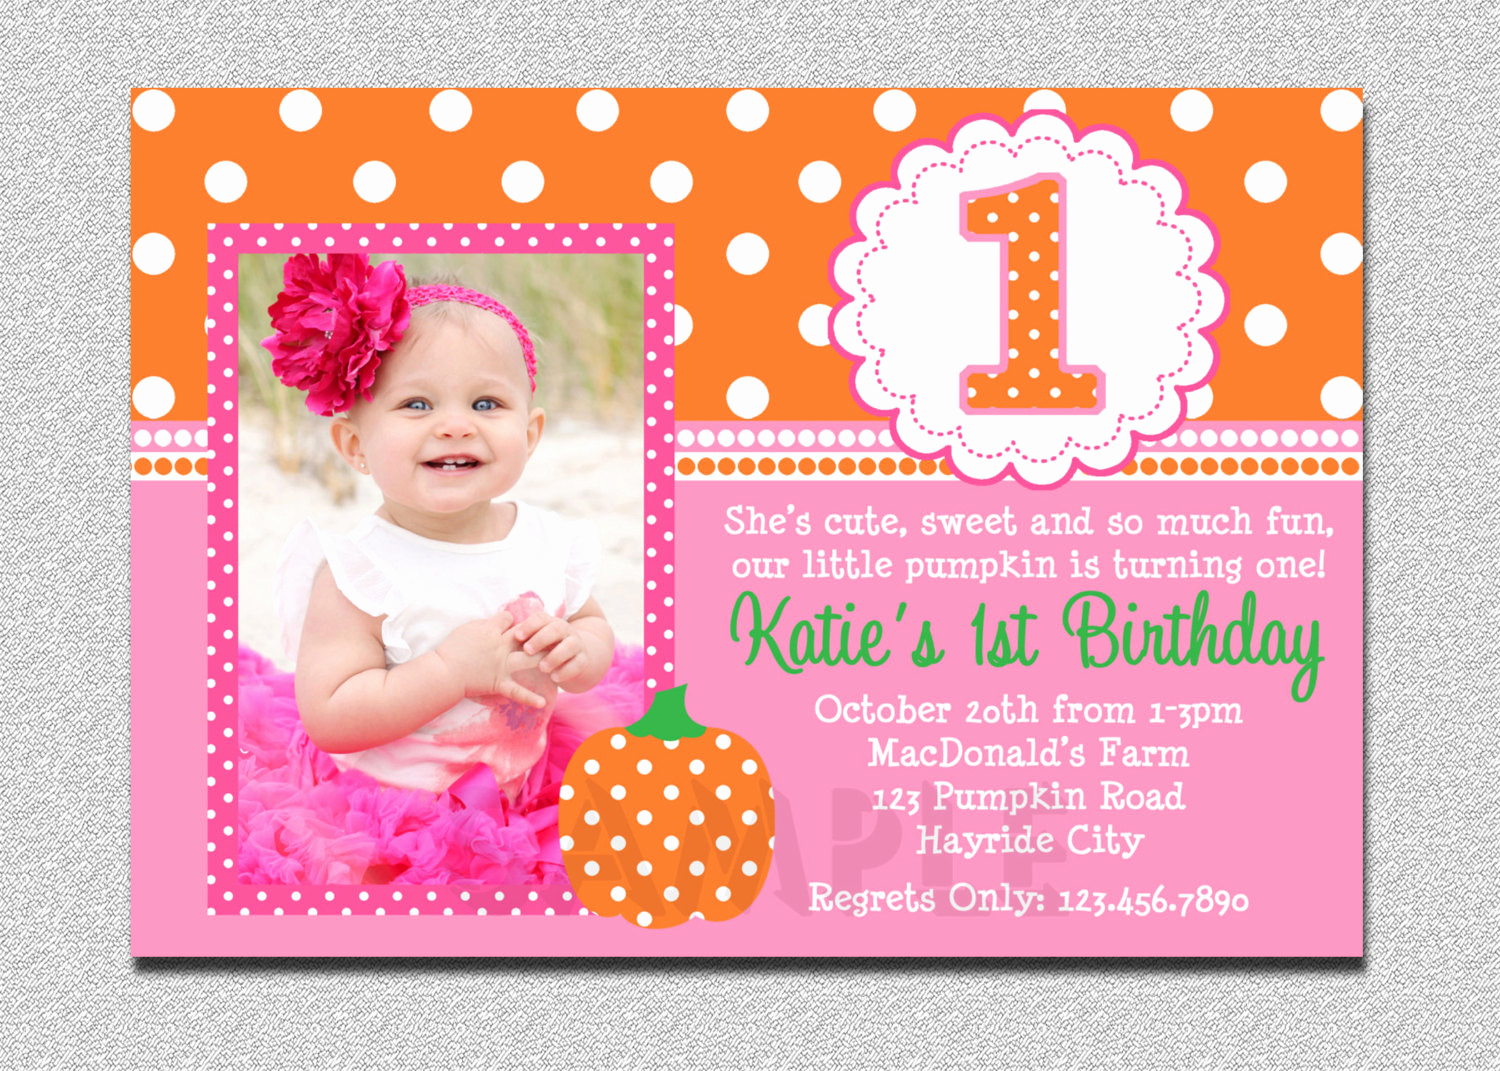 1st Birthday Invitation Template Inspirational Free Templates for Birthday Invitations